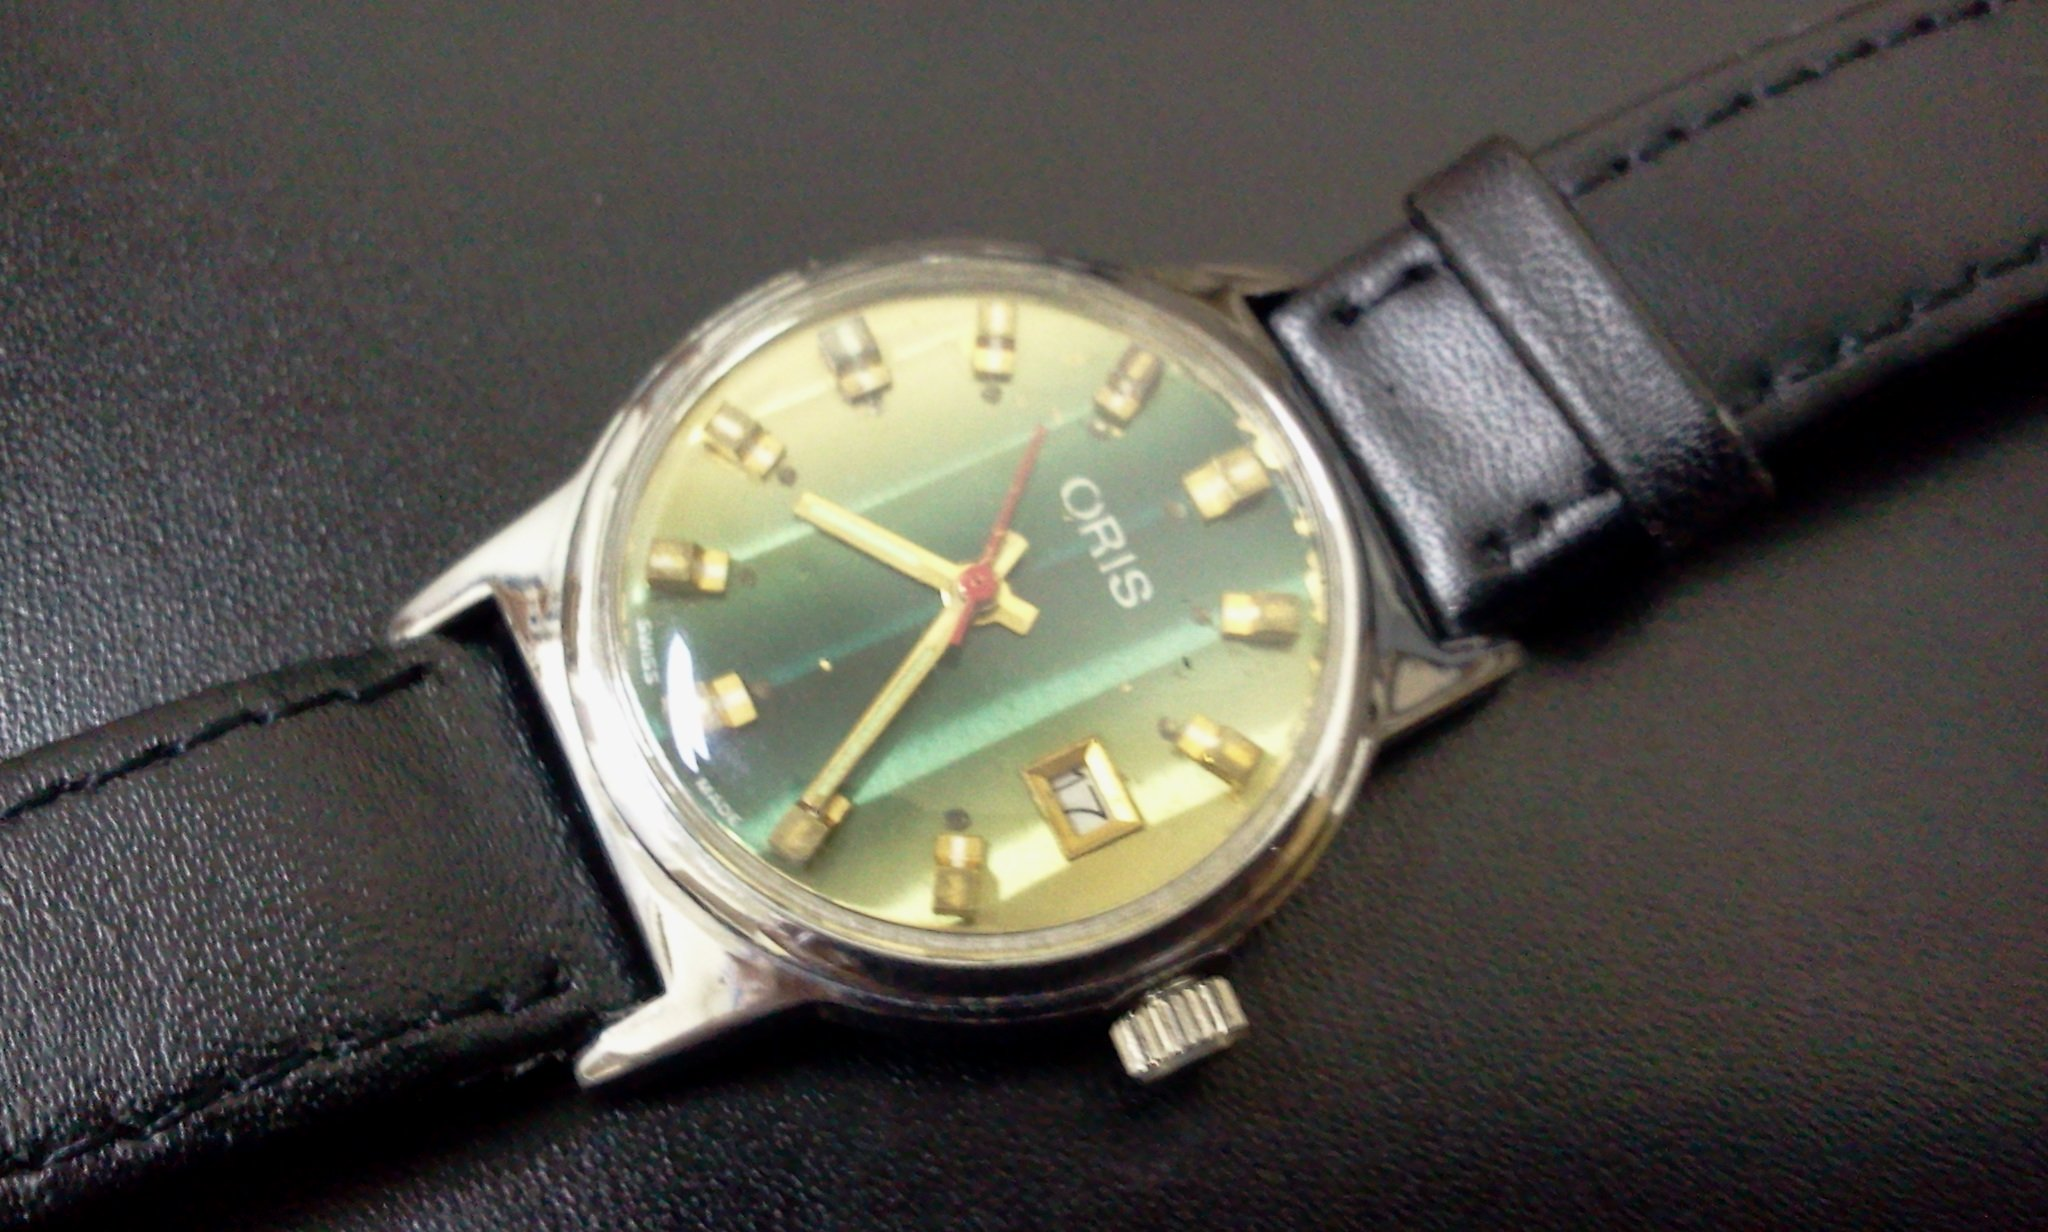 FOR SALE: ORIS VINTAGE WRIST WATCH WITH CALENDER DATE